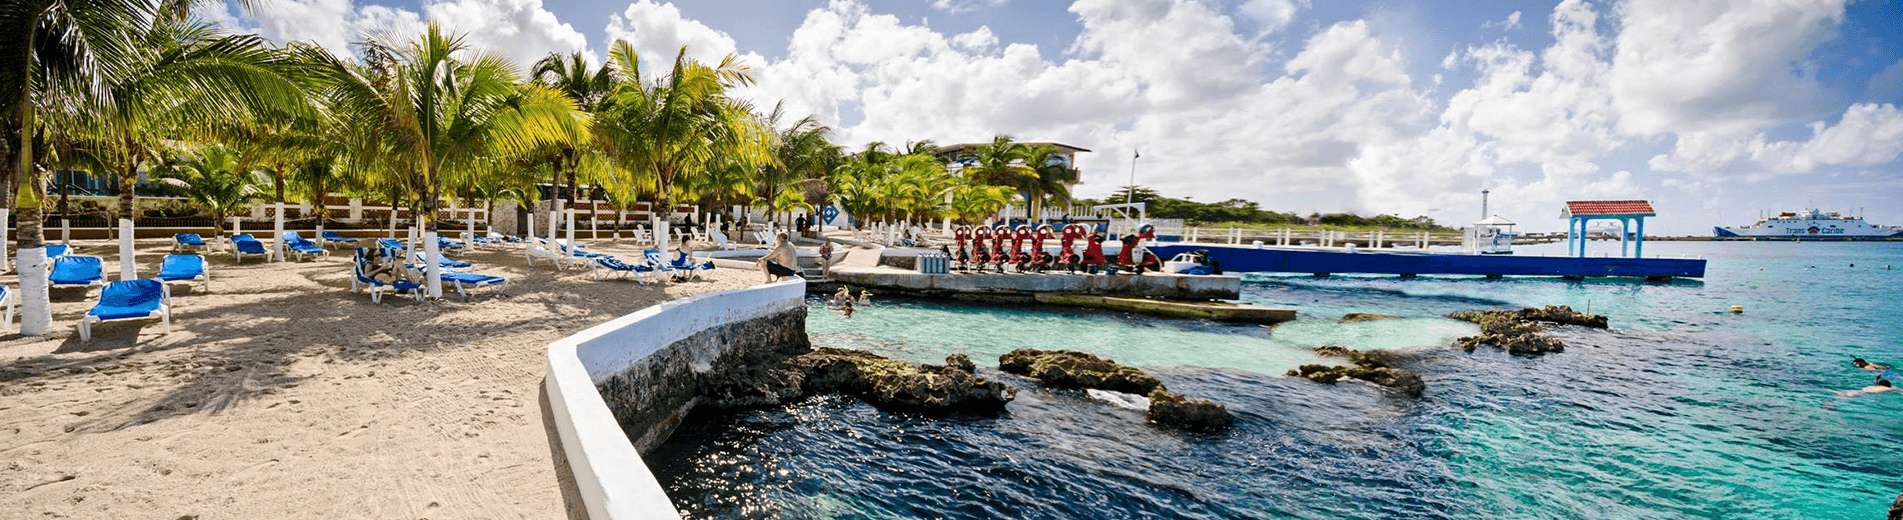 Mexico is known for its warm, welcoming hospitality and at Hotel Cozumel, that's exactly the ambiance you'll receive. This gorgeous Mexican-style Hotel and Resort offers a colorful setting full of adventures above and below the water.